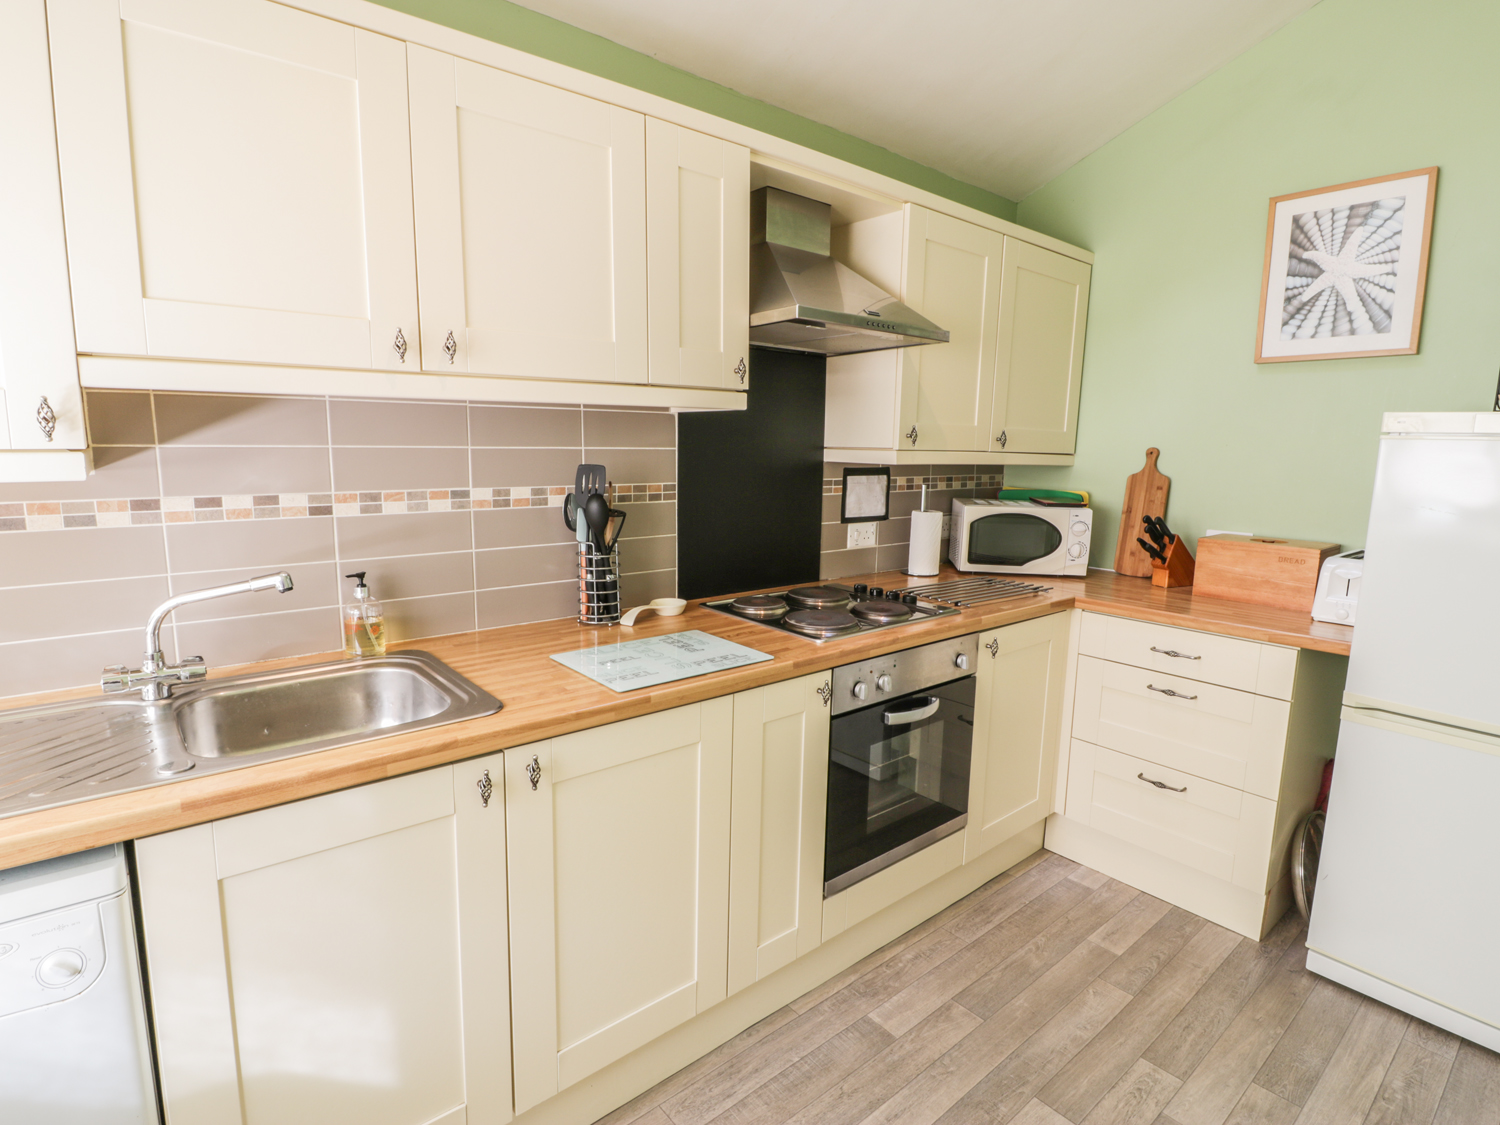 2 Argoed, North Wales